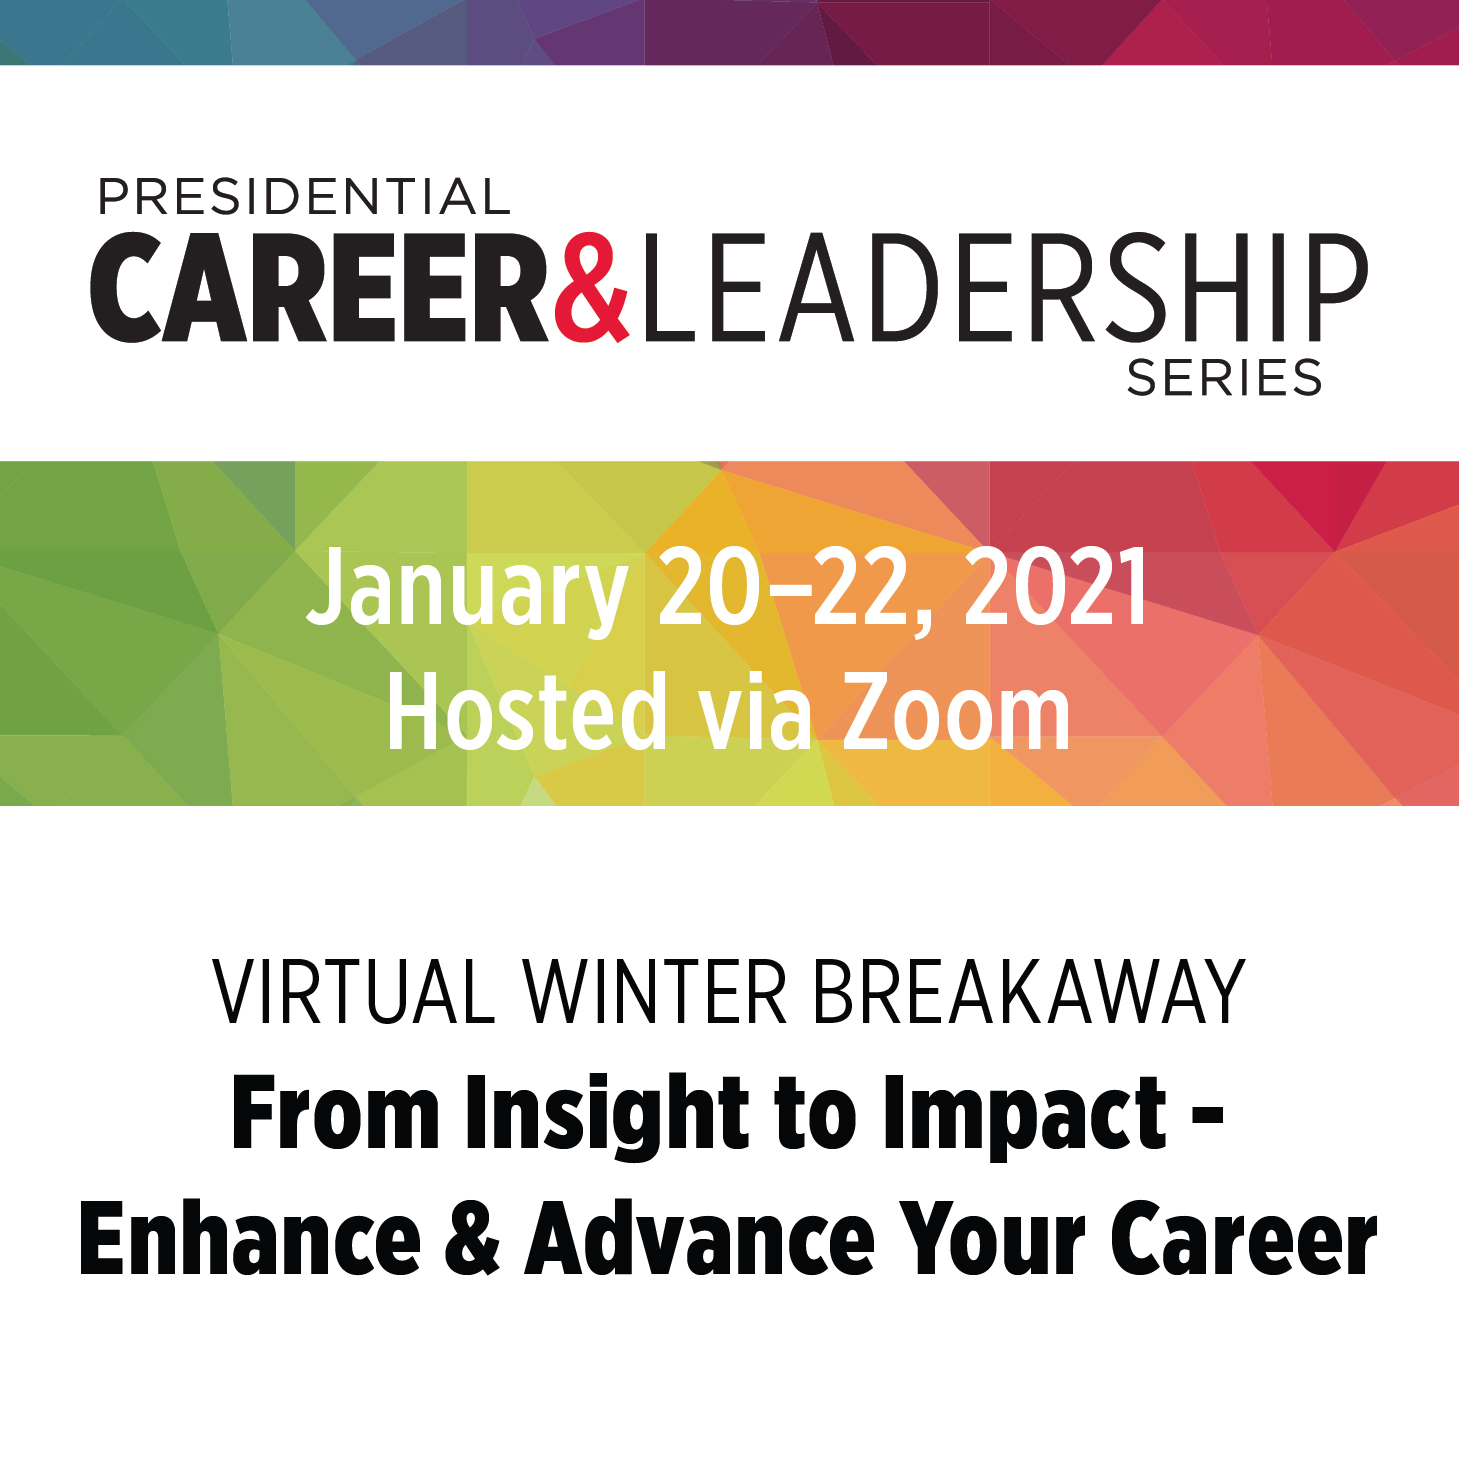 Presidential Career & Leadership Series - January 20-22, 2021 hosted via Zoom - Virtual Winter Breakaway From Insight to Impact - Enhance & Advance Your Career